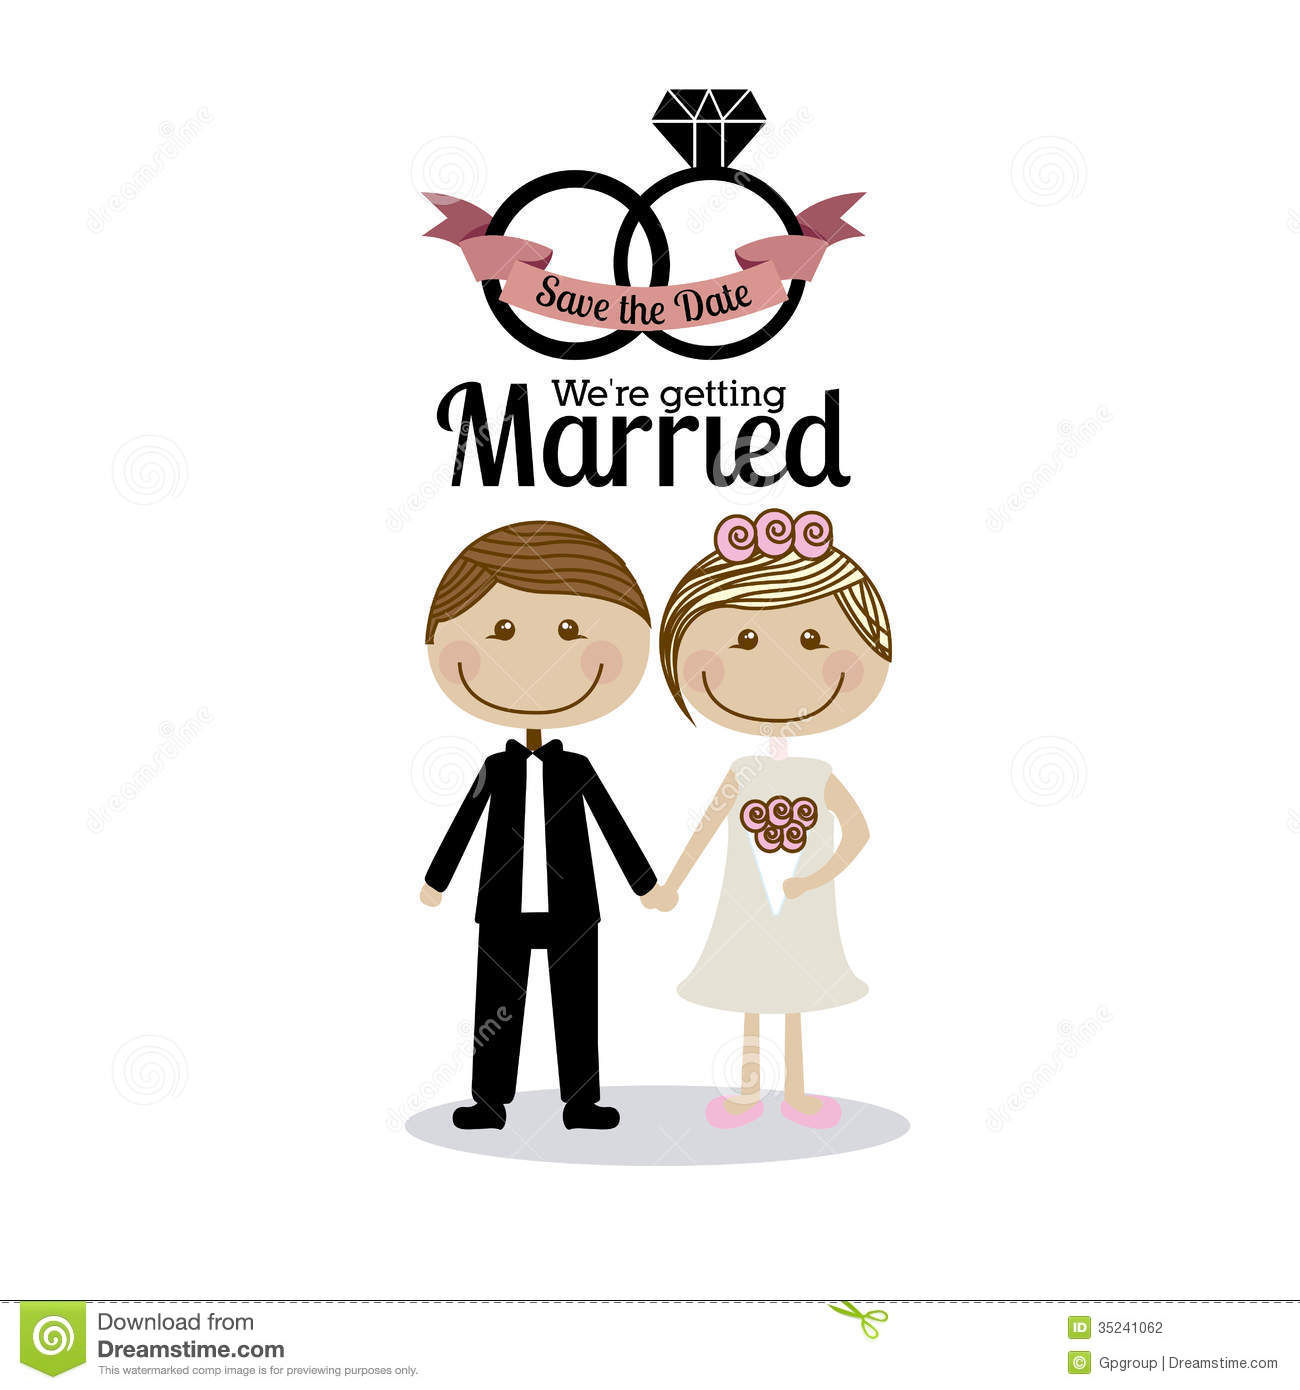 Married design over white background vector illustration.